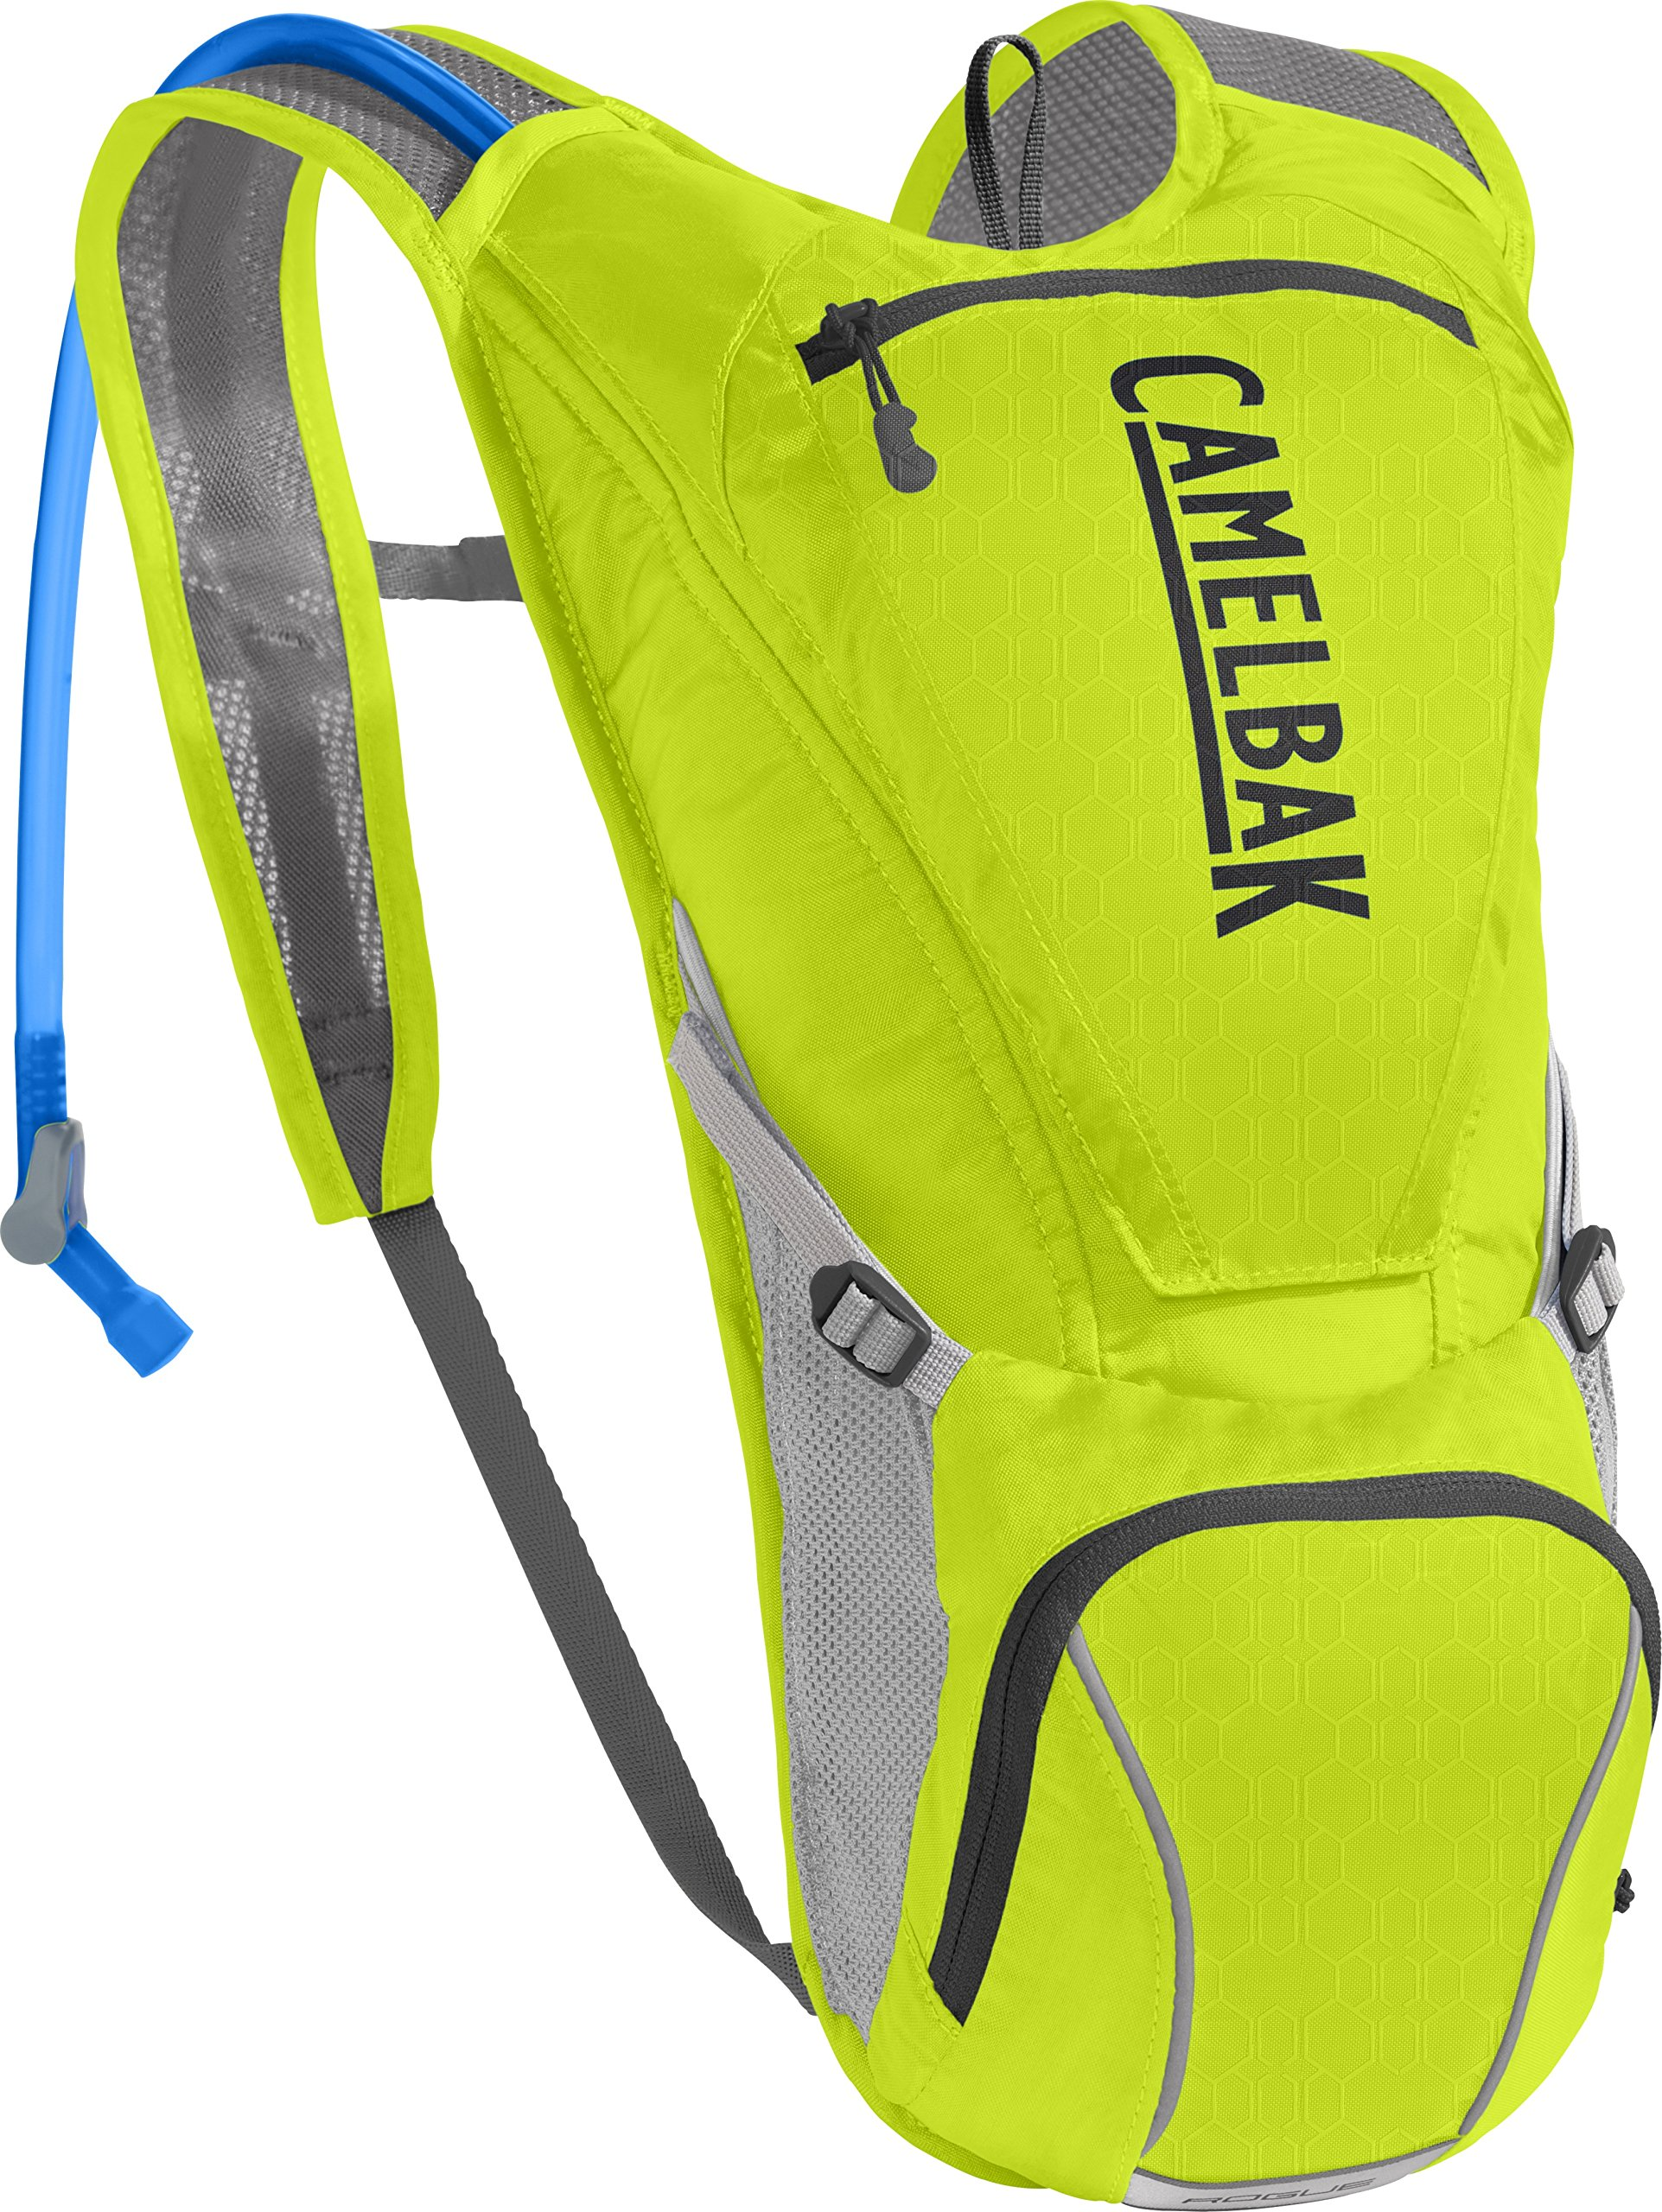 CamelBak Rogue Crux Reservoir Hydration Pack, Lime Punch/Silver, 2.5 Large/85 Oz